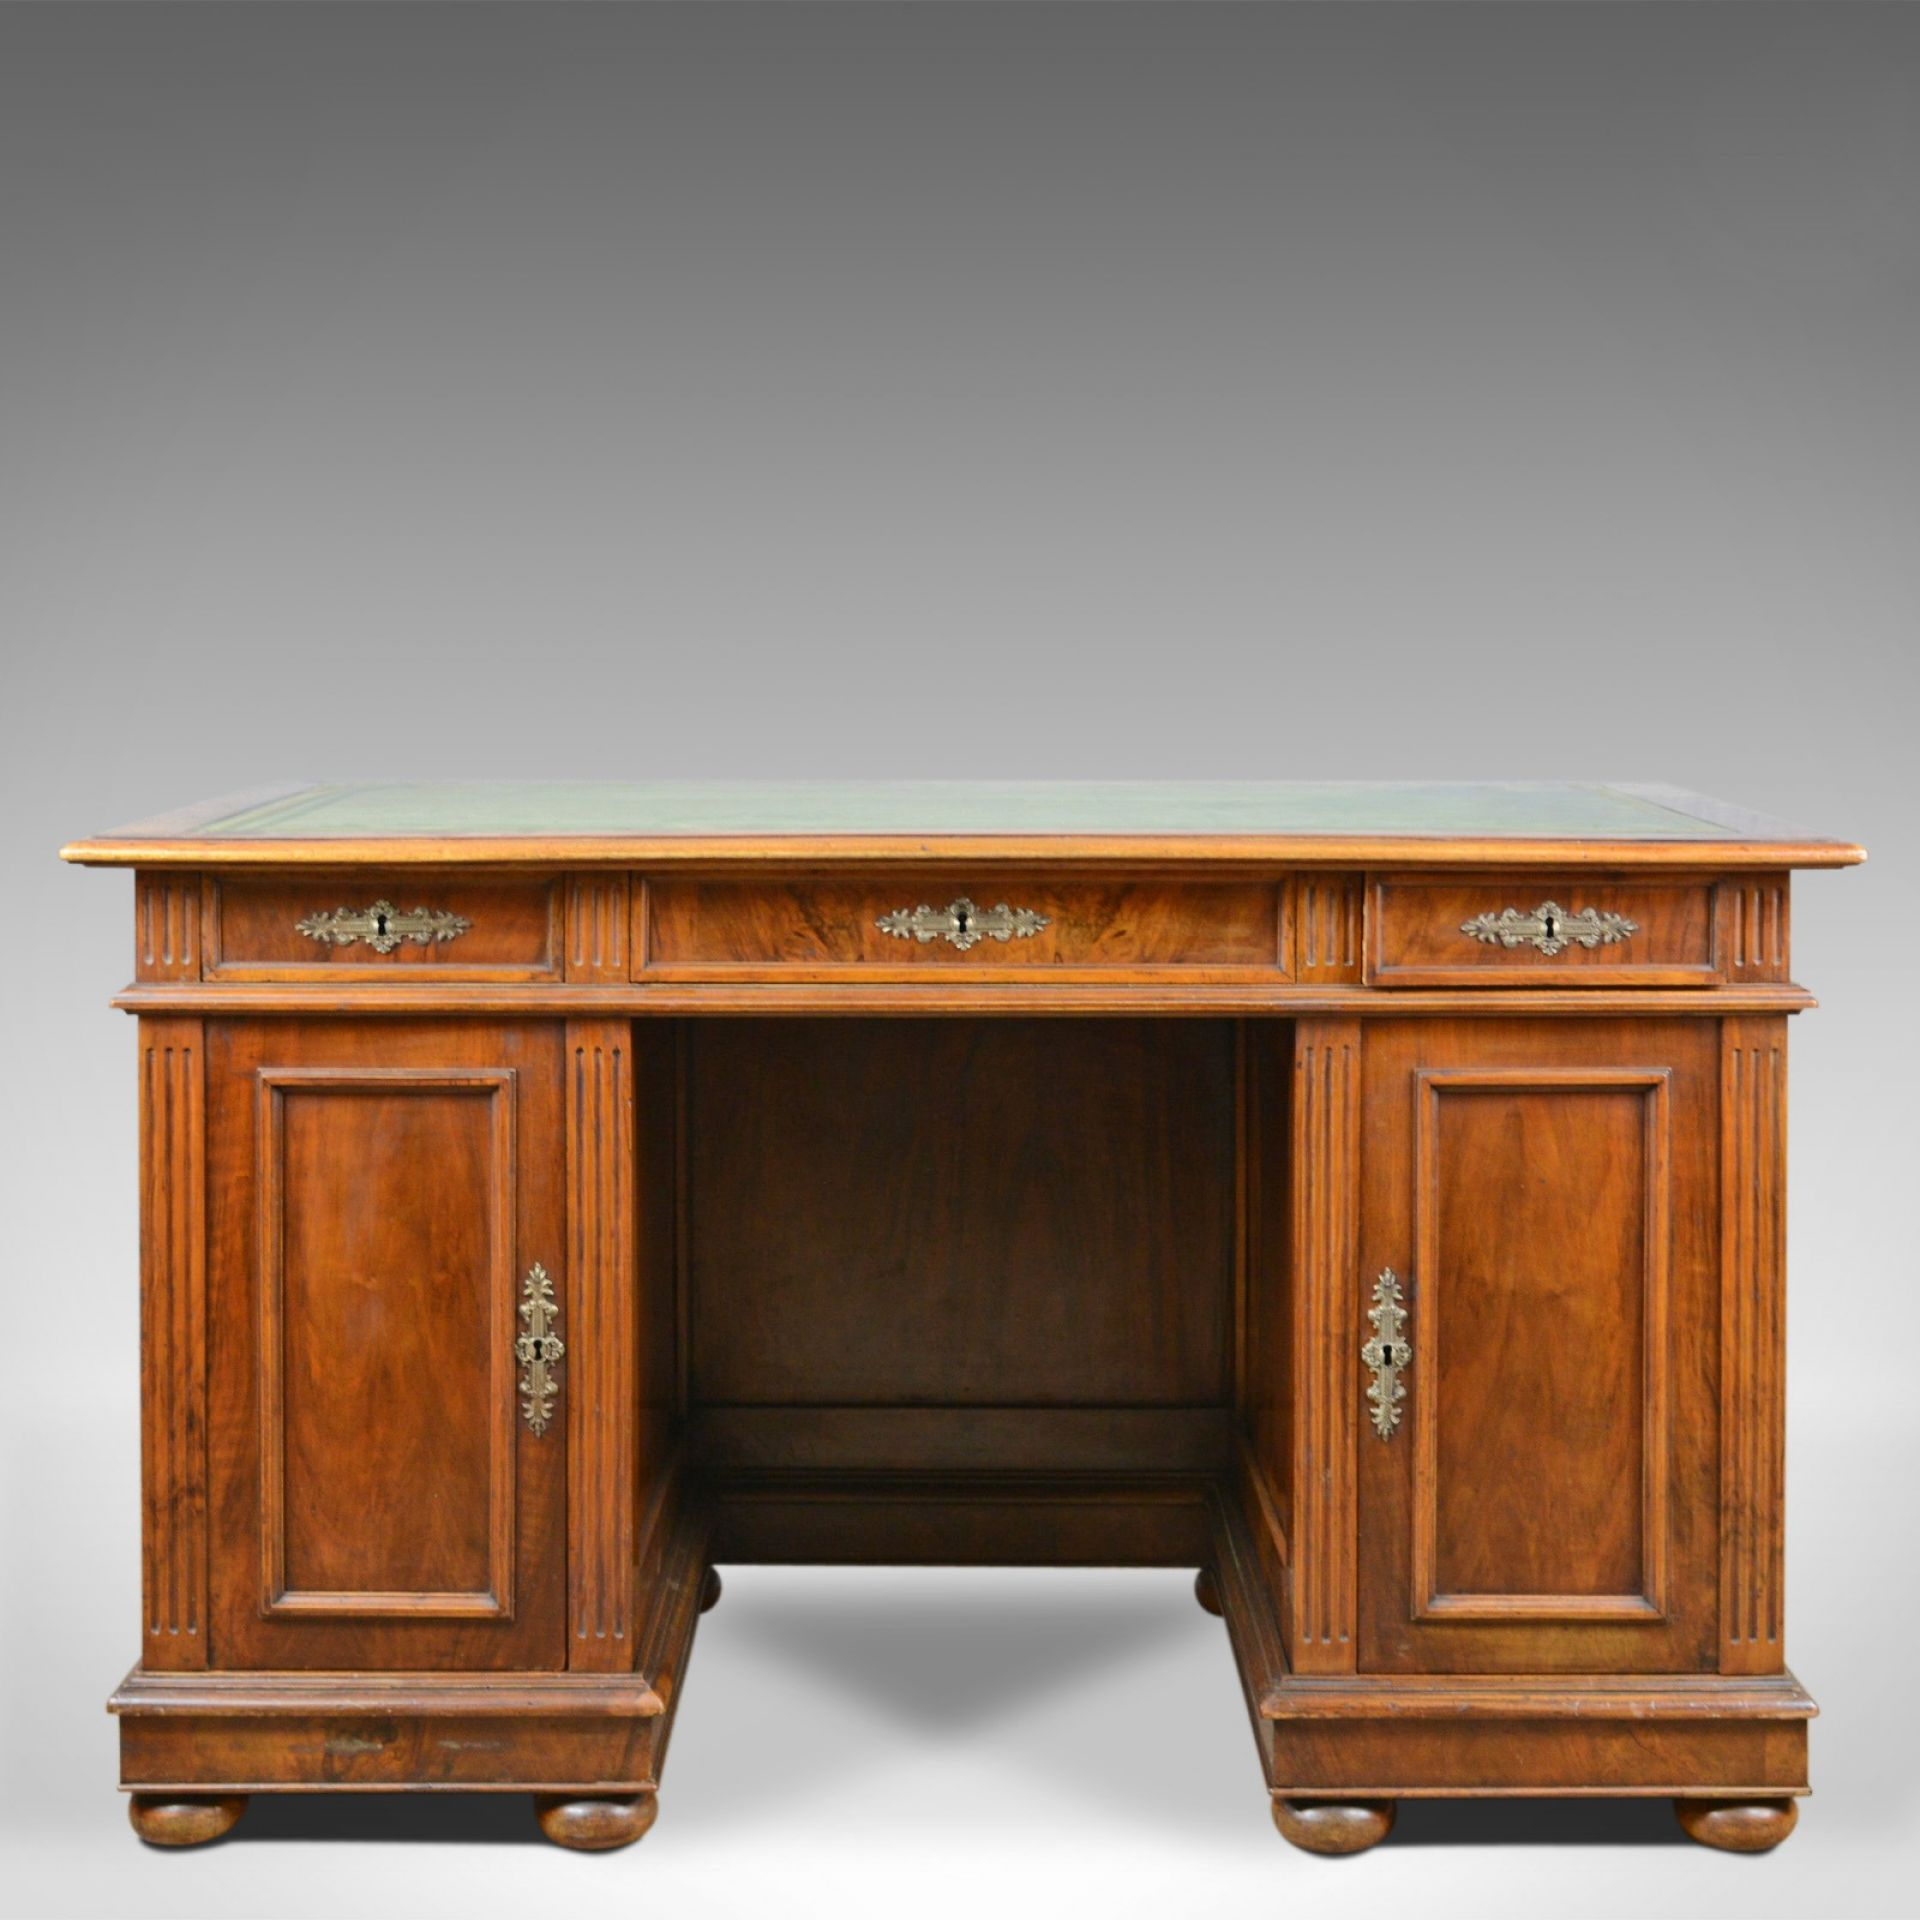 Antique Pedestal Desk, French, 19th Century, Walnut, Leather Top, Circa 1880